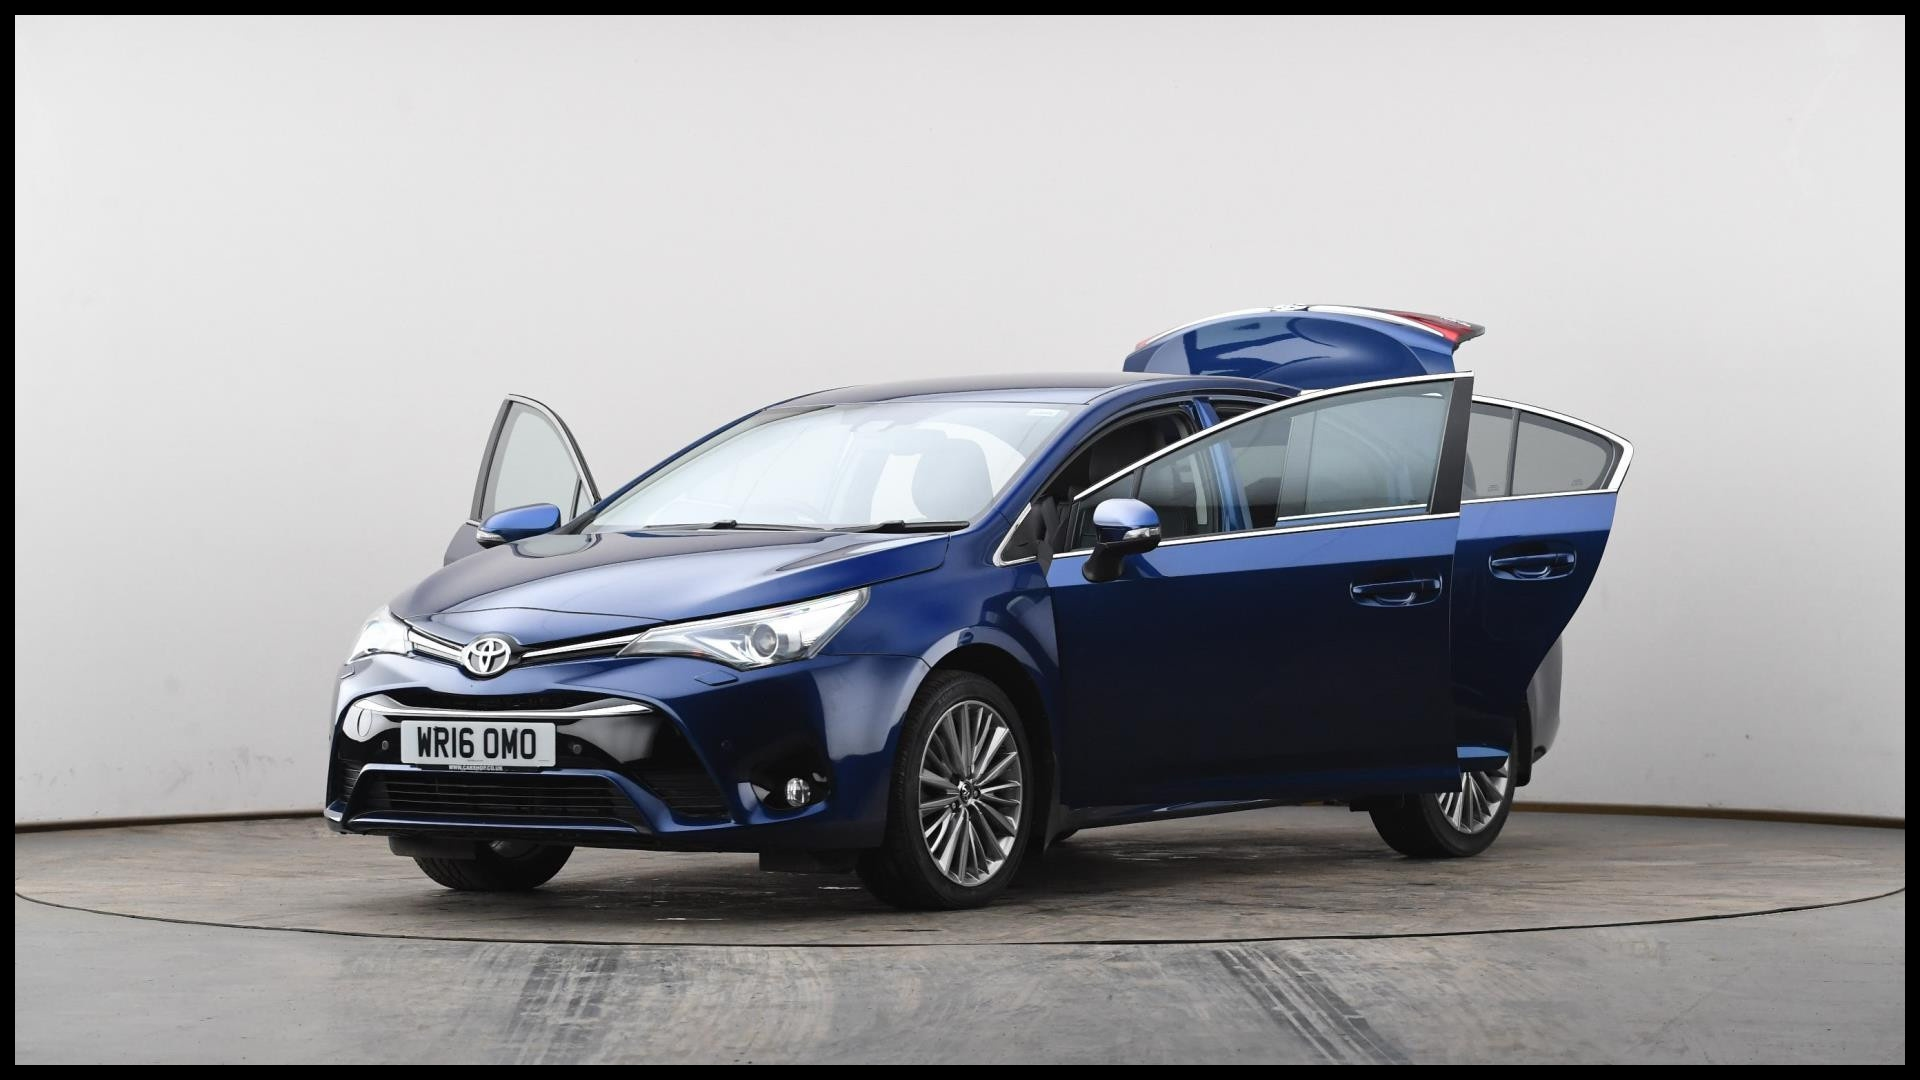 Toyota Yaris Insurance Price Inspirational Lovely Insurance toyota Yaris